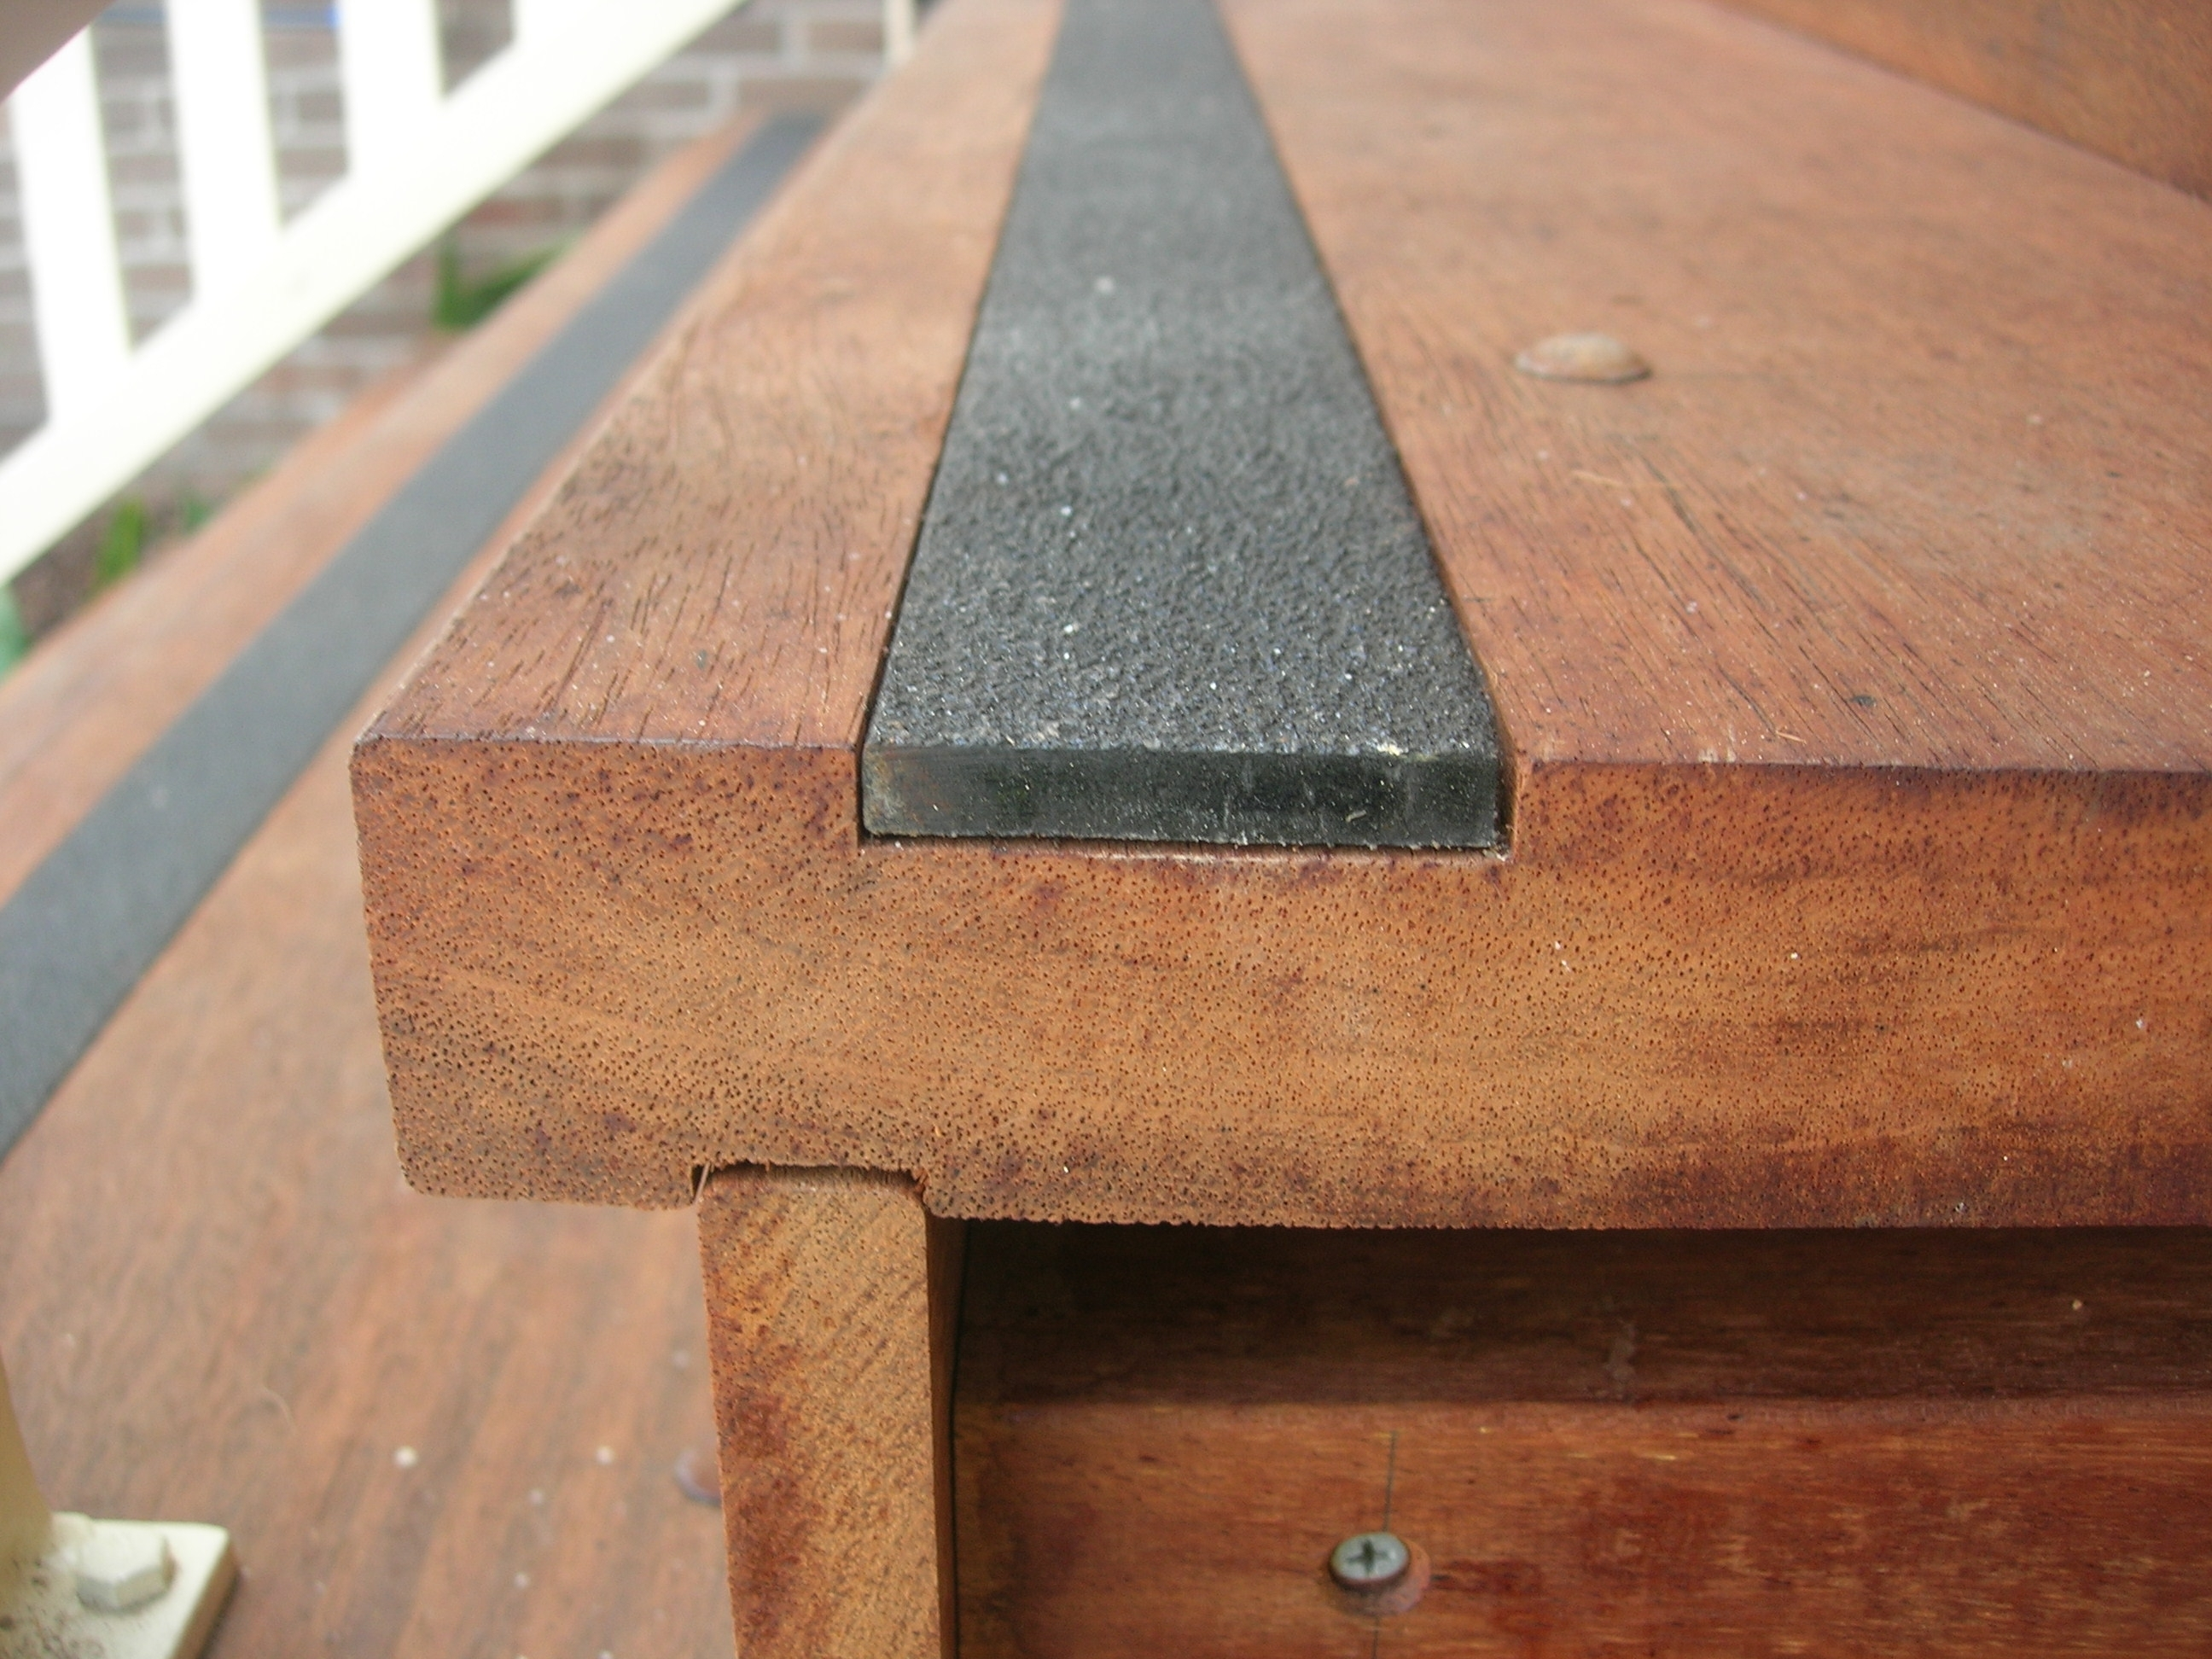 Image Result For Poured Concrete Stairs With Abrasive Tread In Skid Resistant Stair Treads (Image 10 of 15)